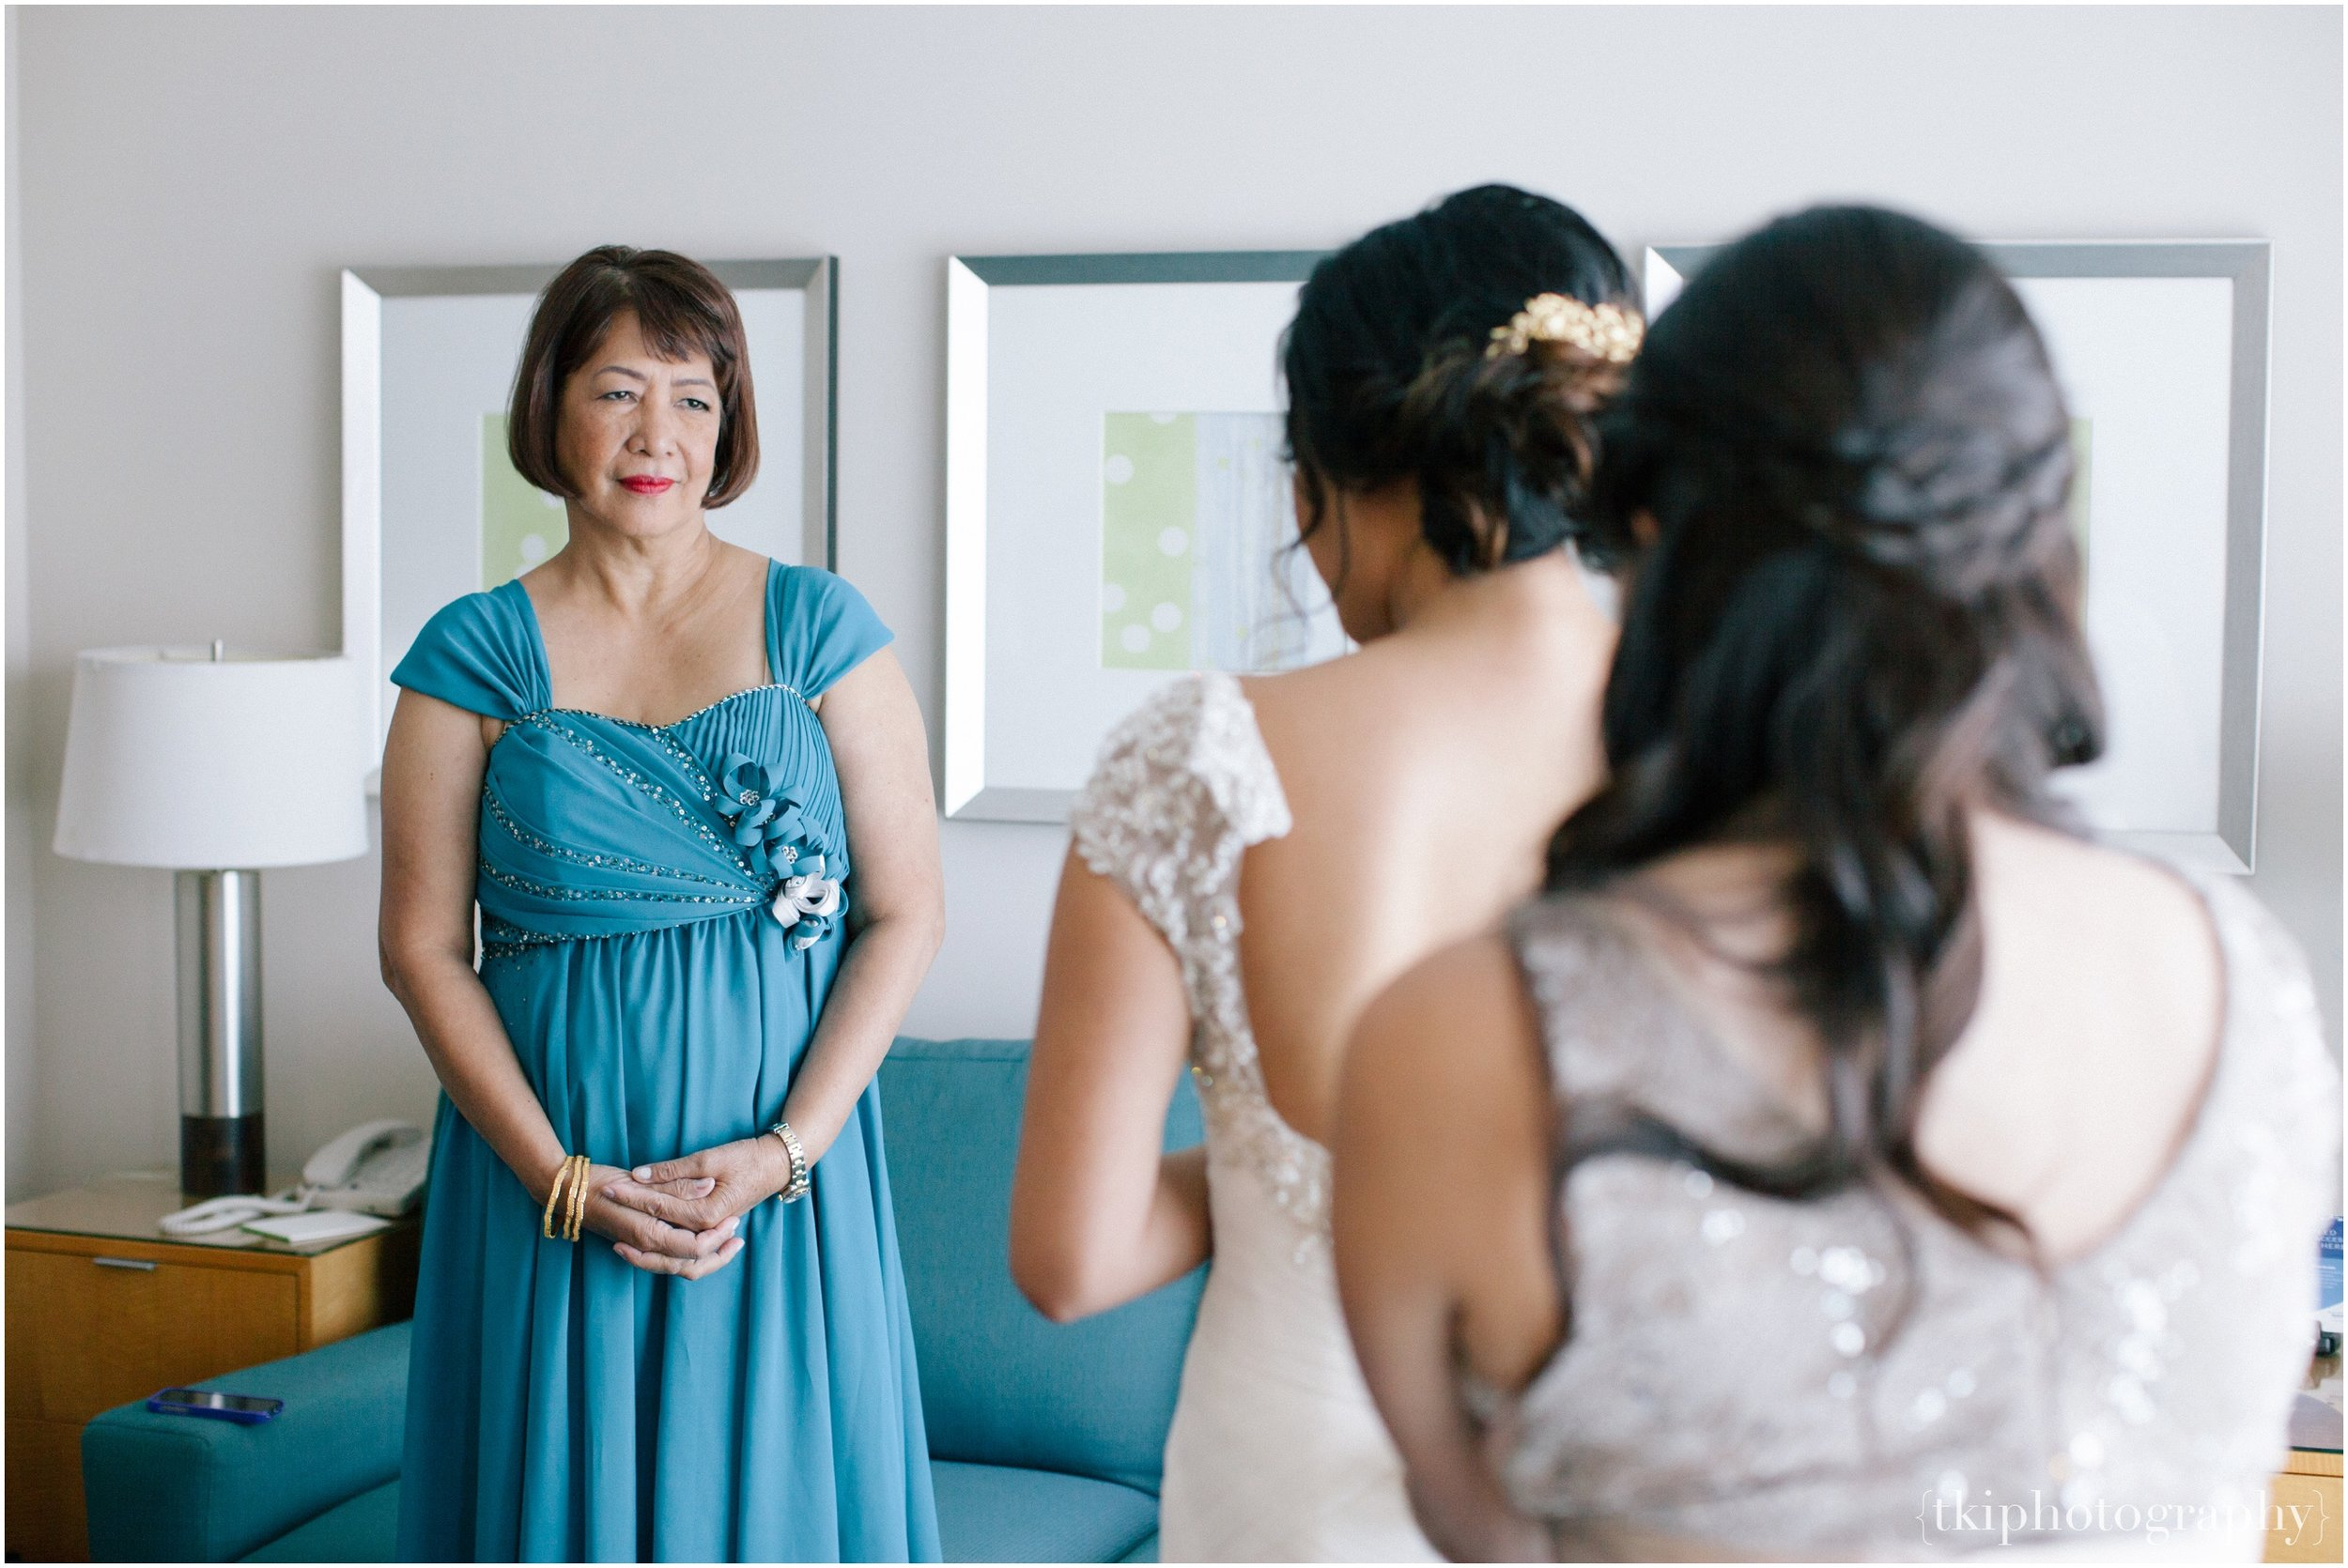 This is my favorite moment, and I always make sure I look out for it in hope that I don't miss any amount of emotion expressed as she watches her daughter transform into a beautiful bride.